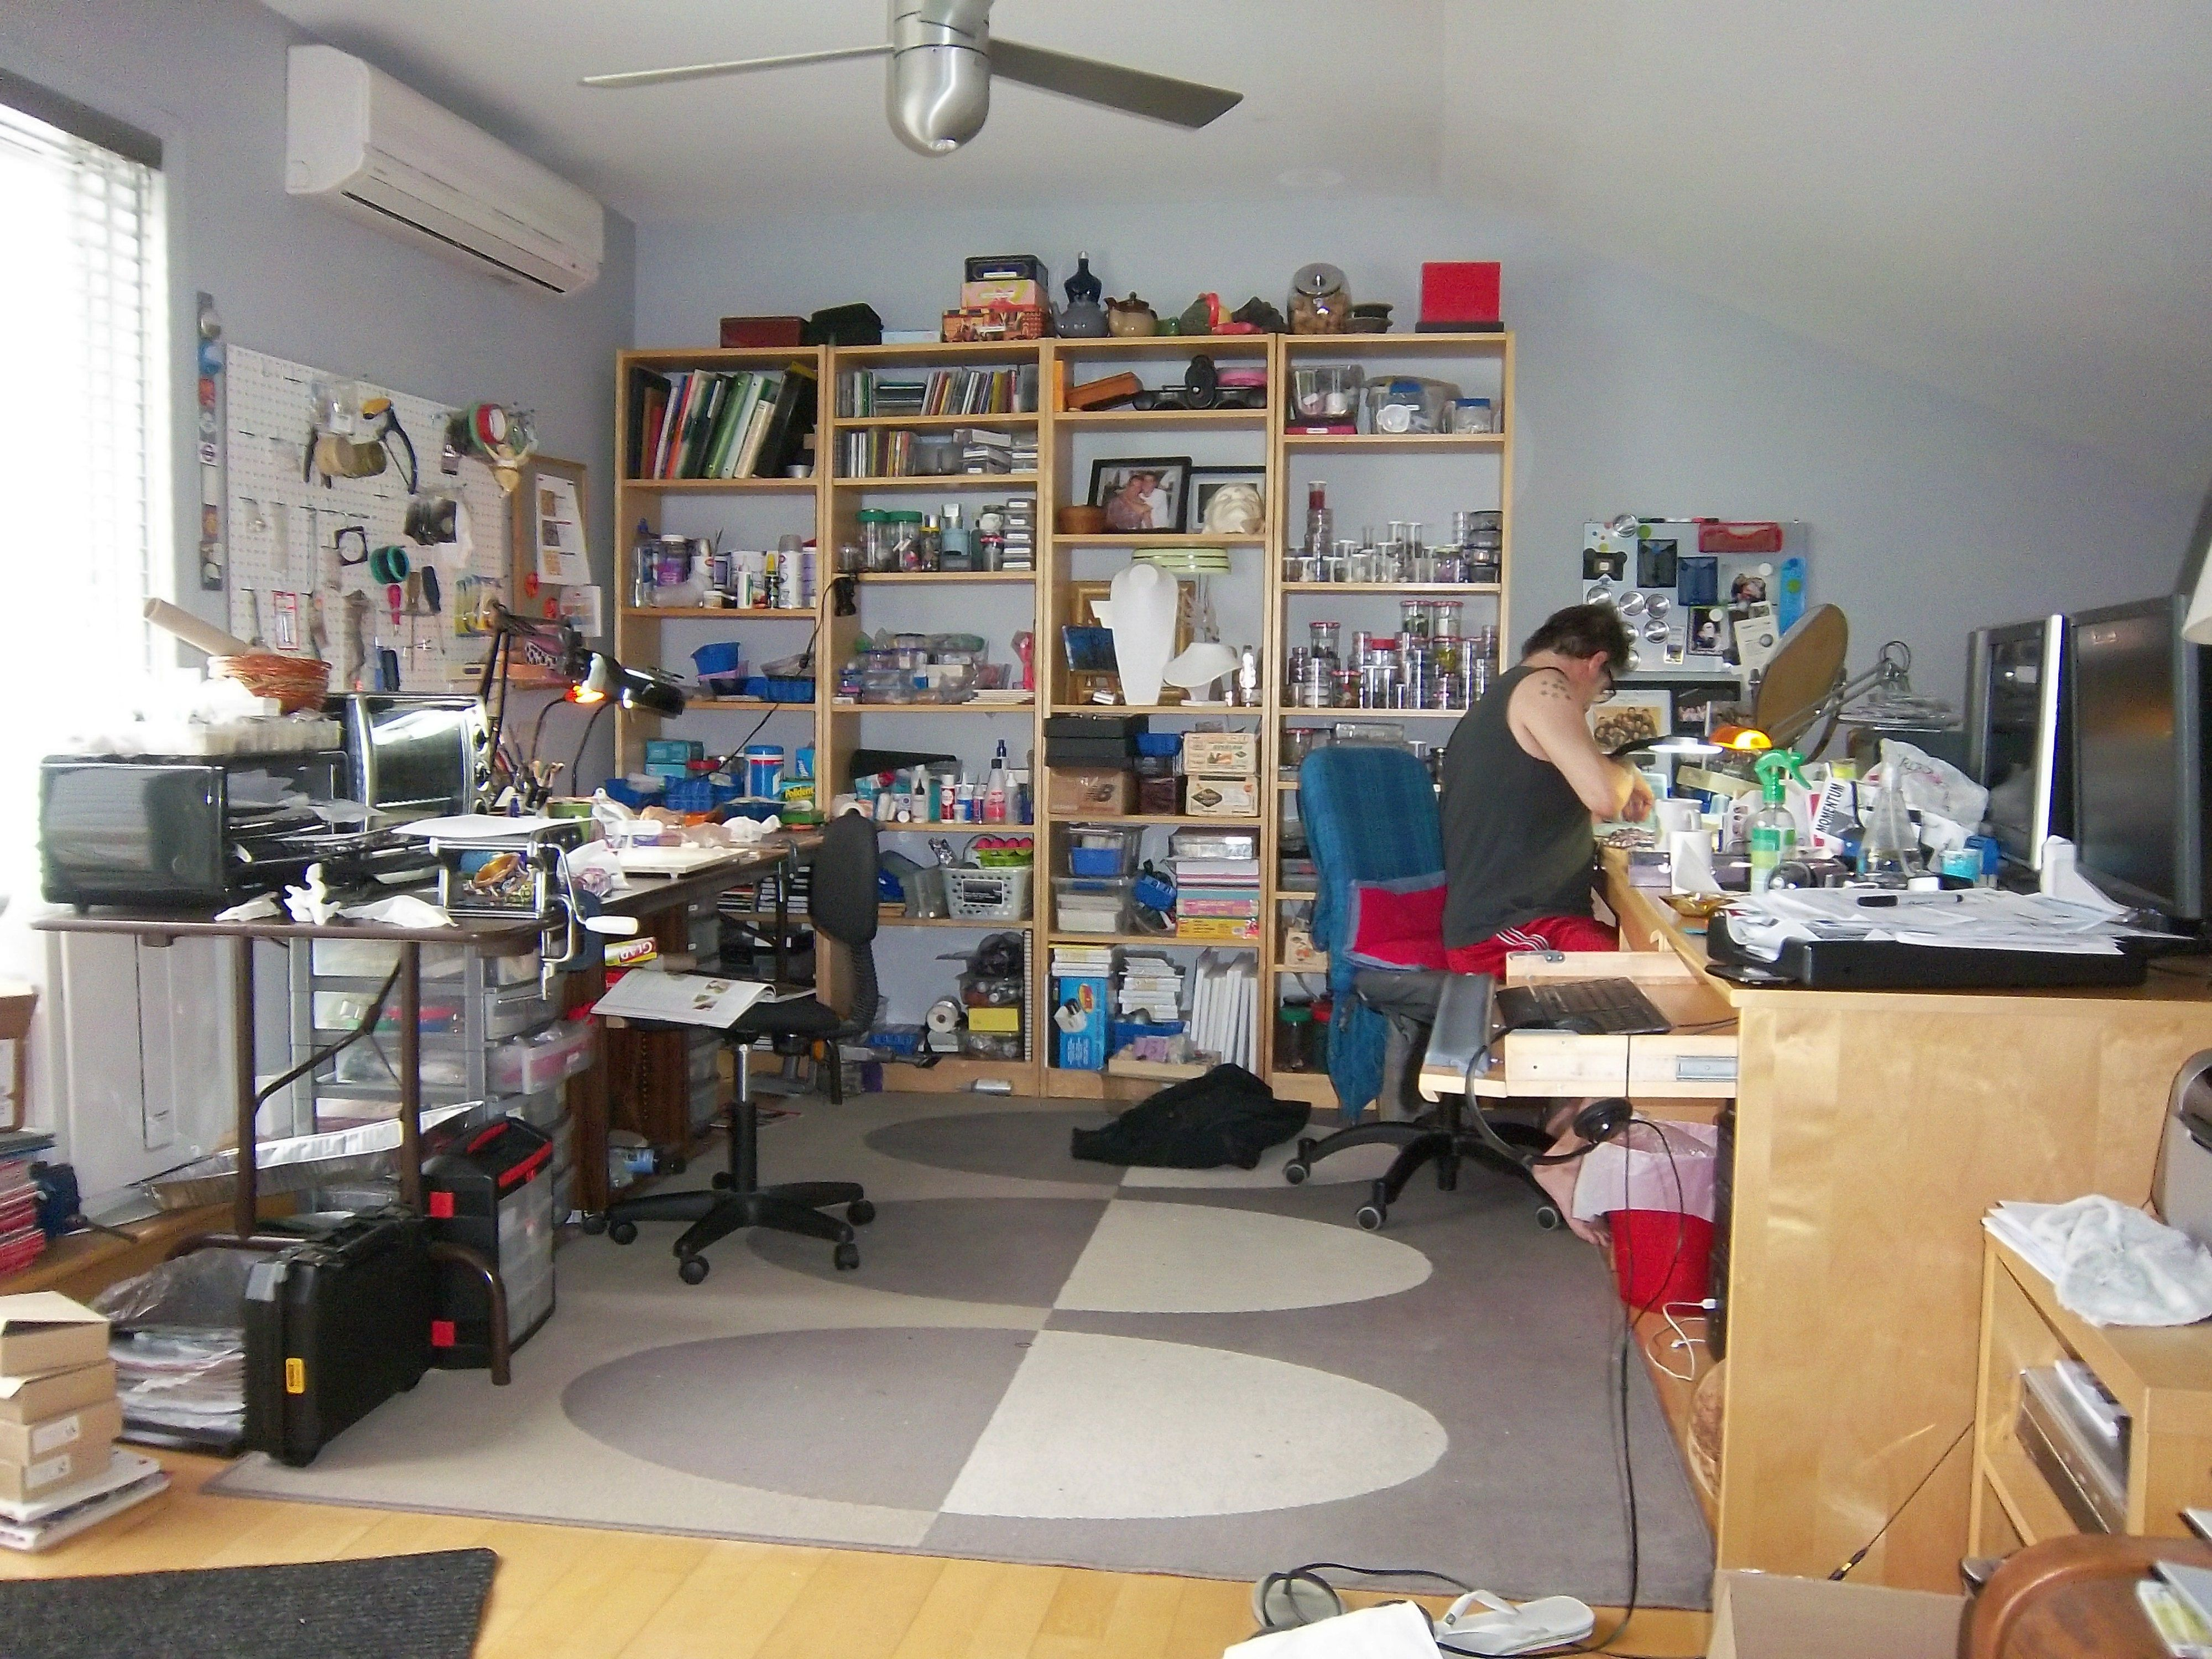 Massimo's Awwwsimo's studio!!!!! I could LIVE in it!